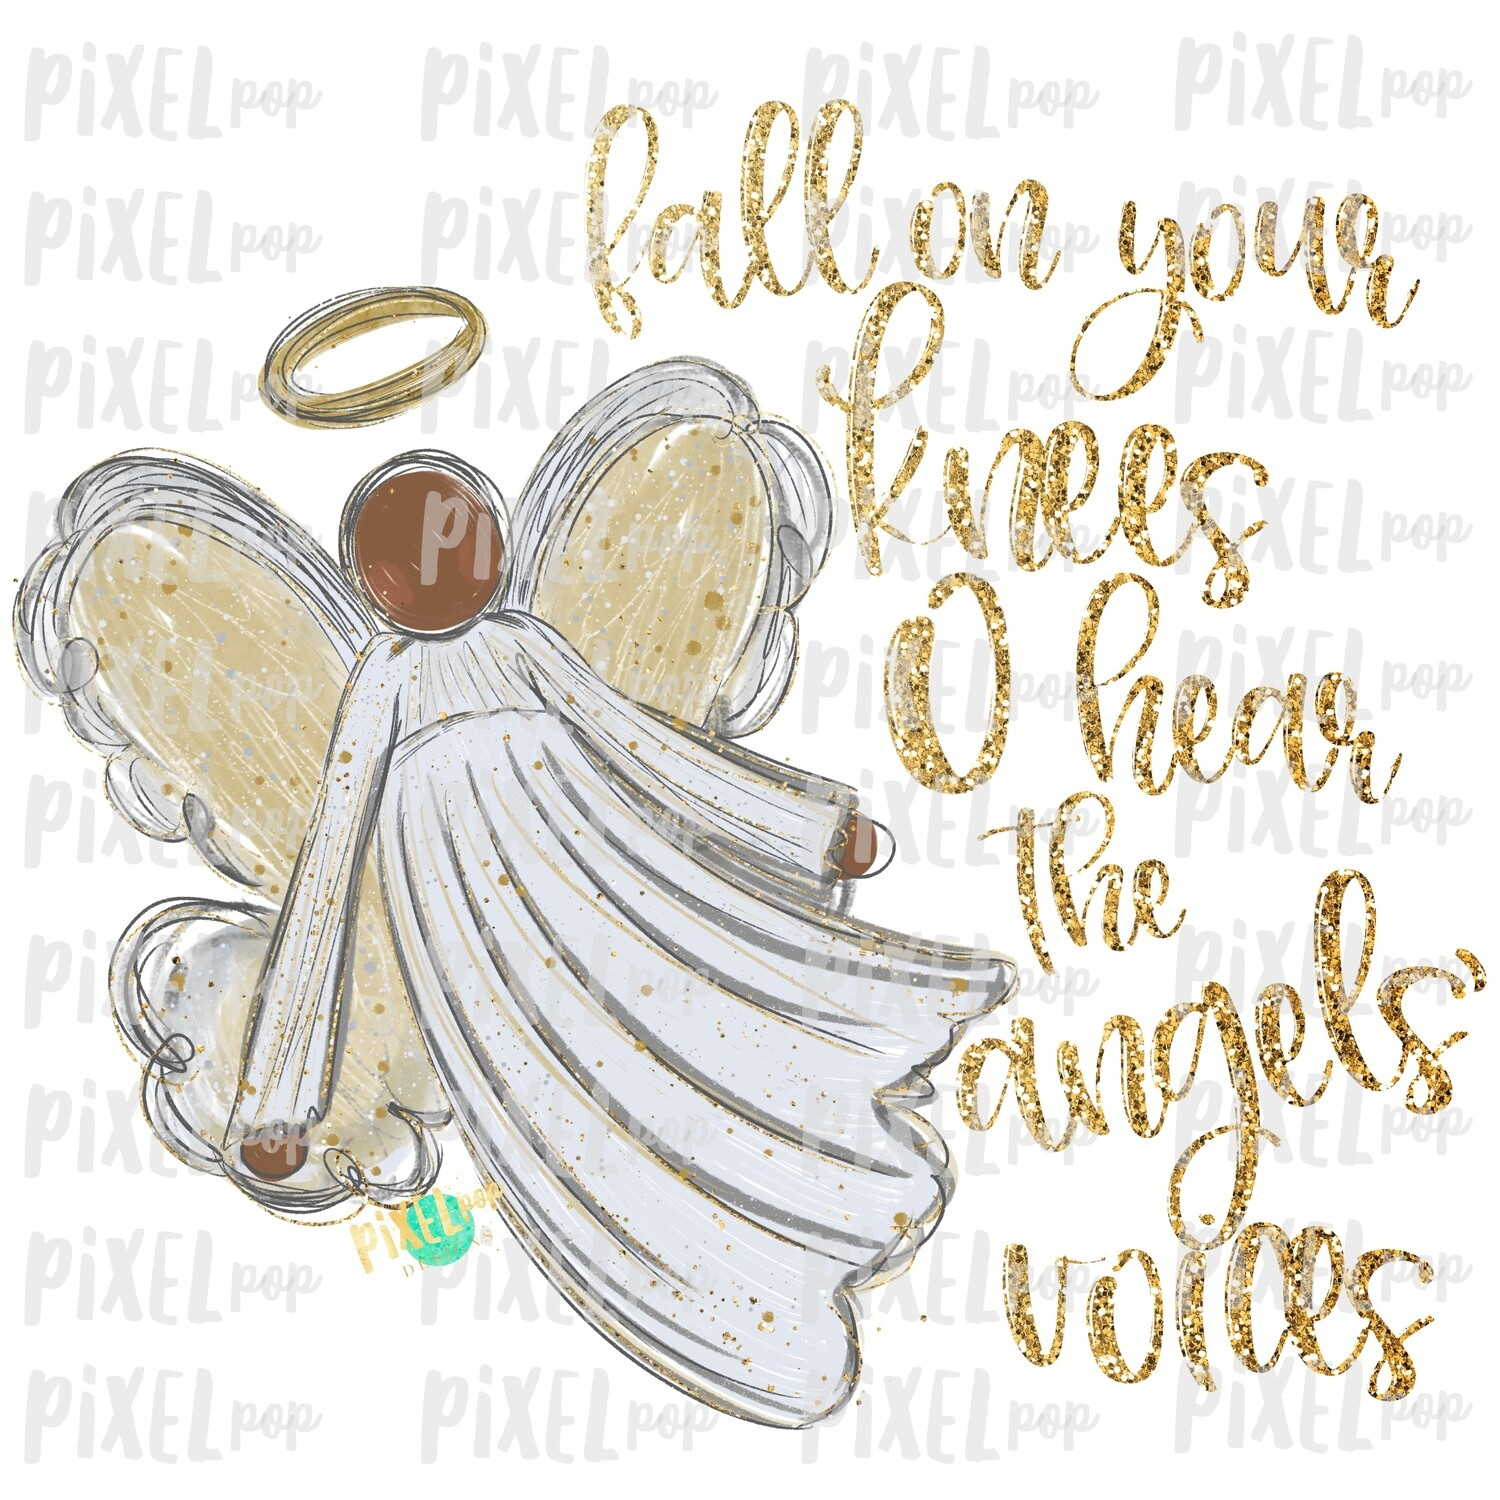 Dark Skin Angel GLITTER Fall on Your Knees Art Sublimation PNG   Ornament Design   Hand Painted   Digital Download   Printable   Christmas